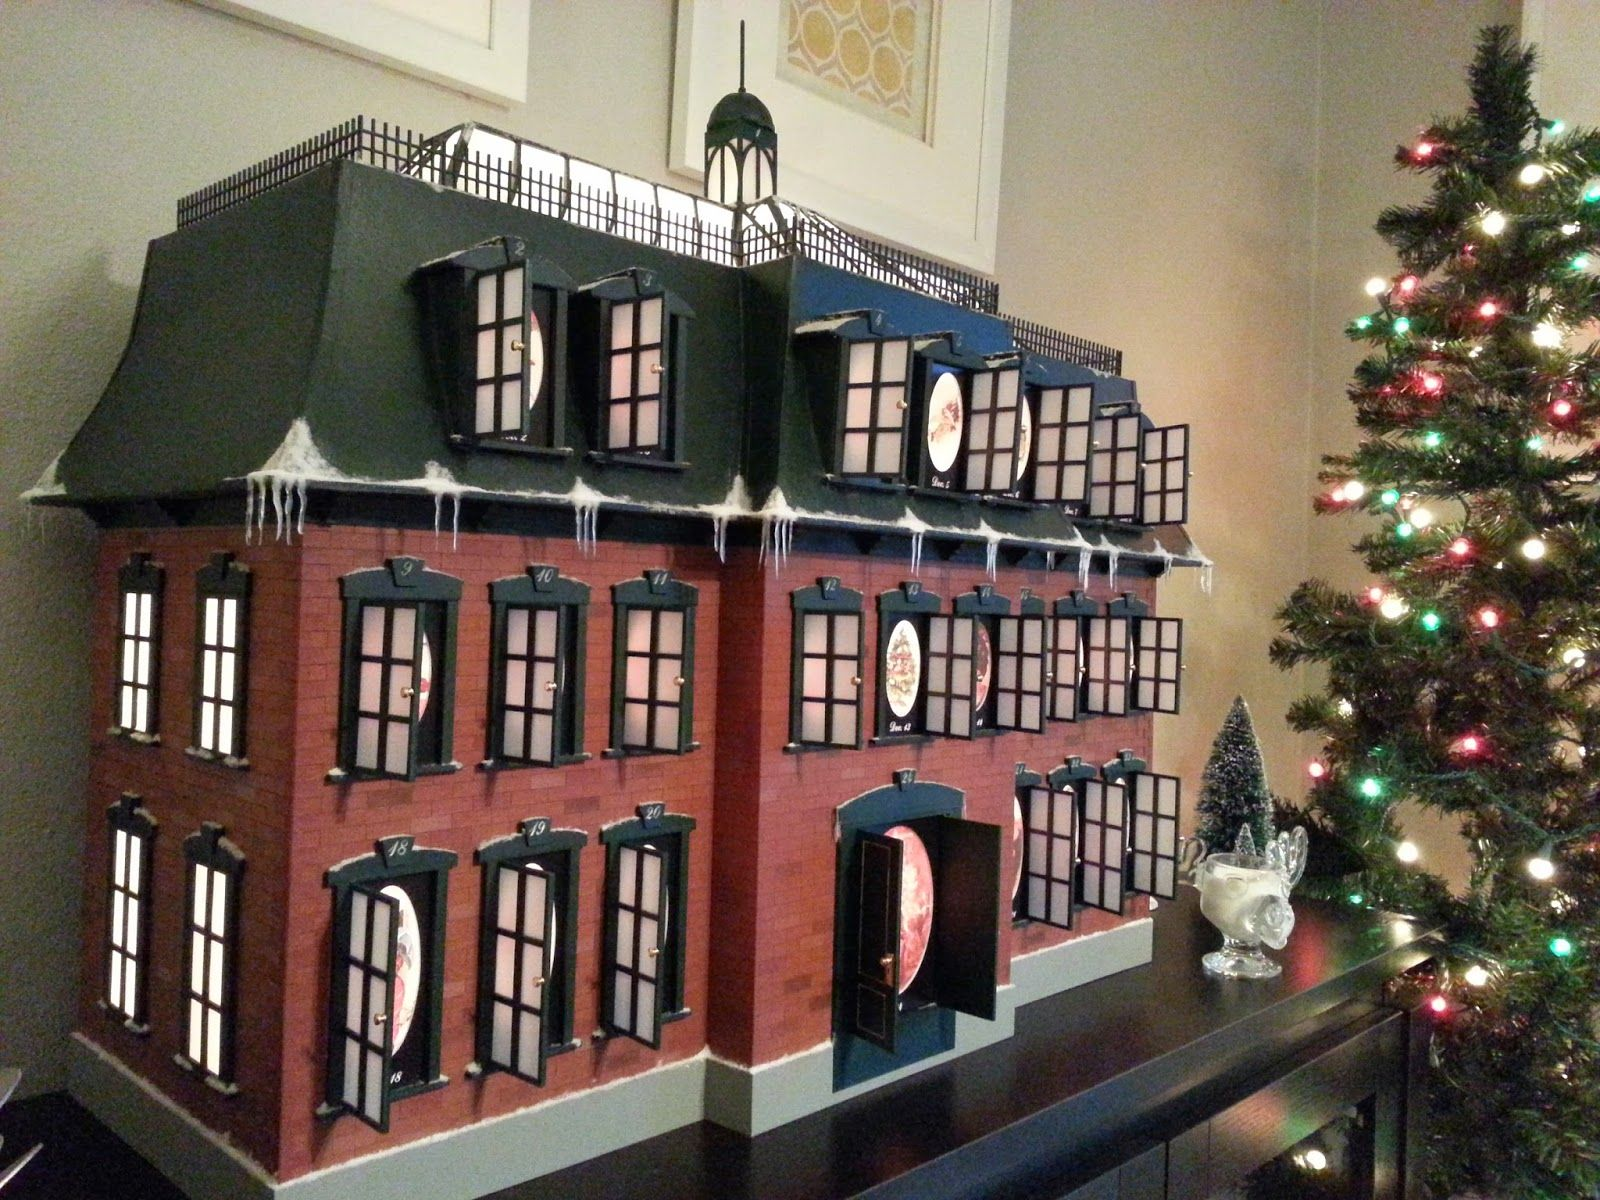 THE MOST ACCURATE CHRISTMAS VACATION HOUSE. Designed for